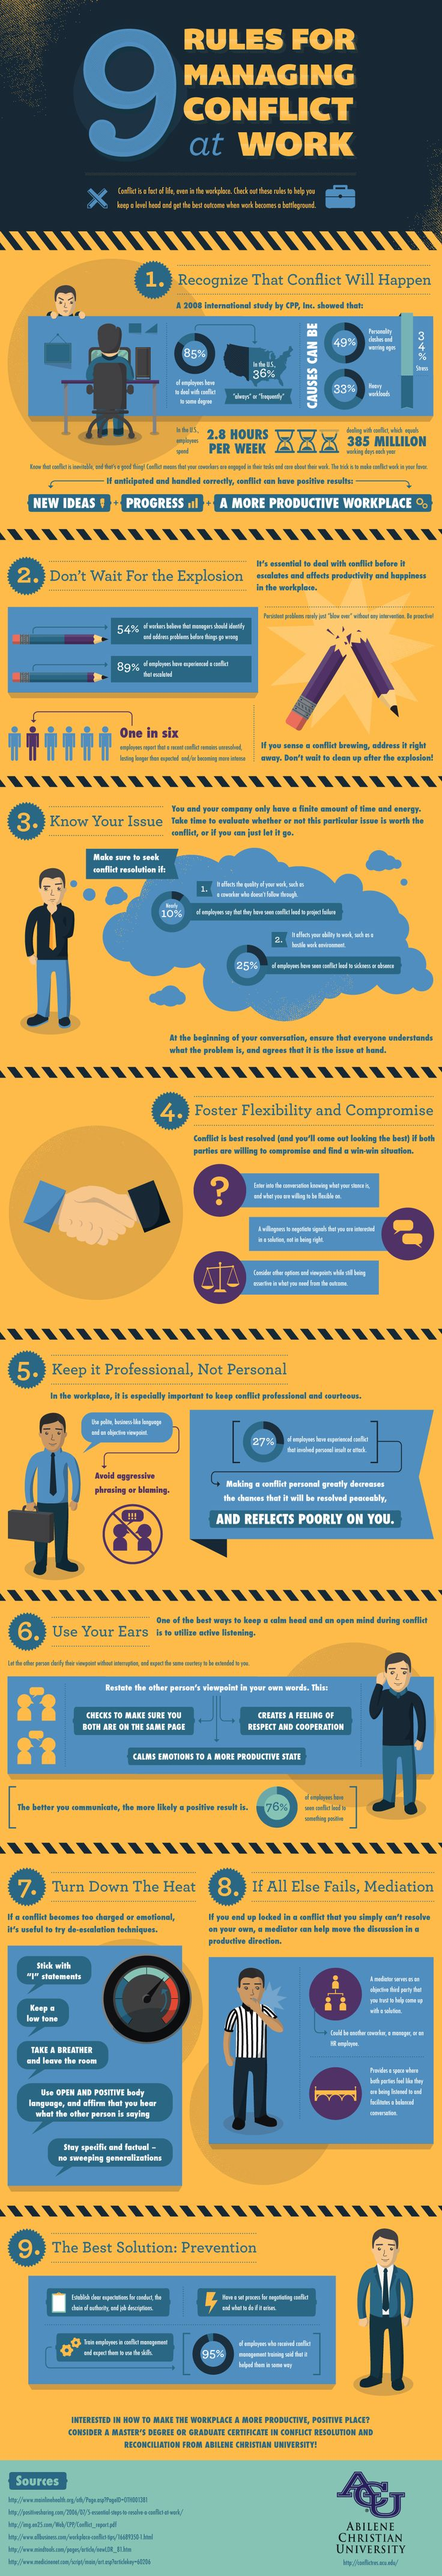 9 Rules For Conflict Management At Work #Infographic